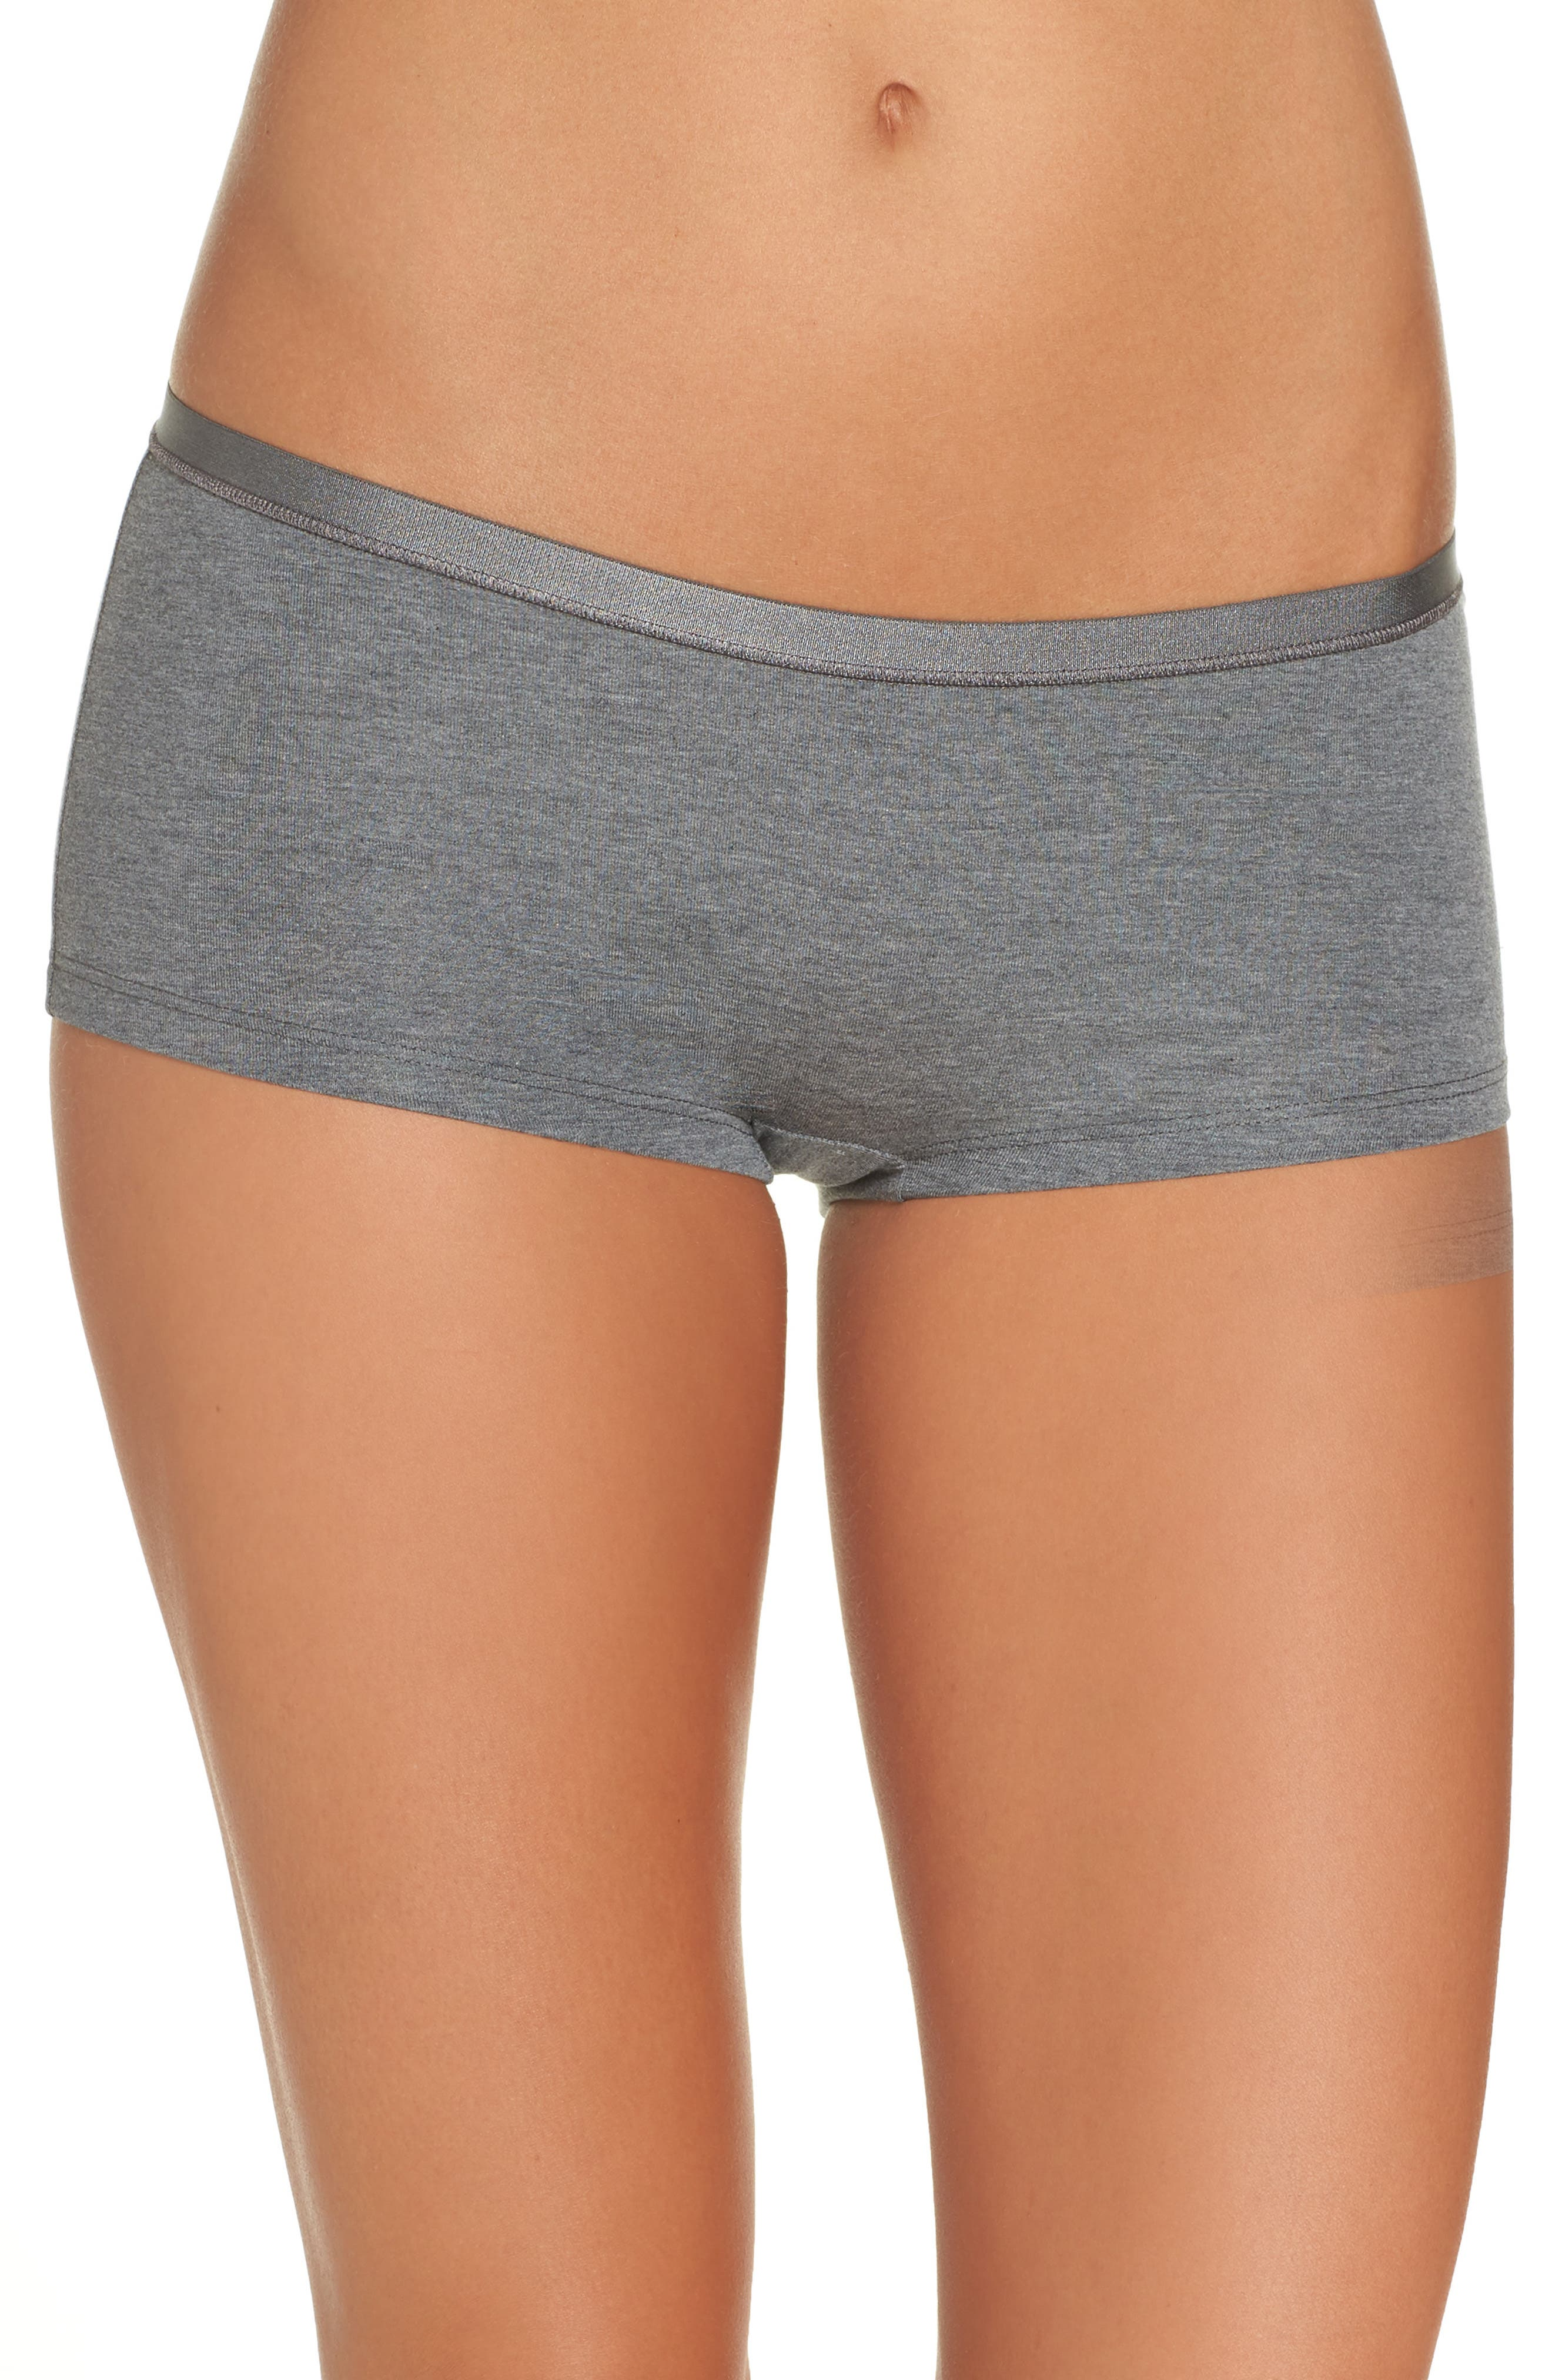 Soft Touch Stretch Modal Boyshorts,                         Main,                         color, SOFT TOUCH MELANGE